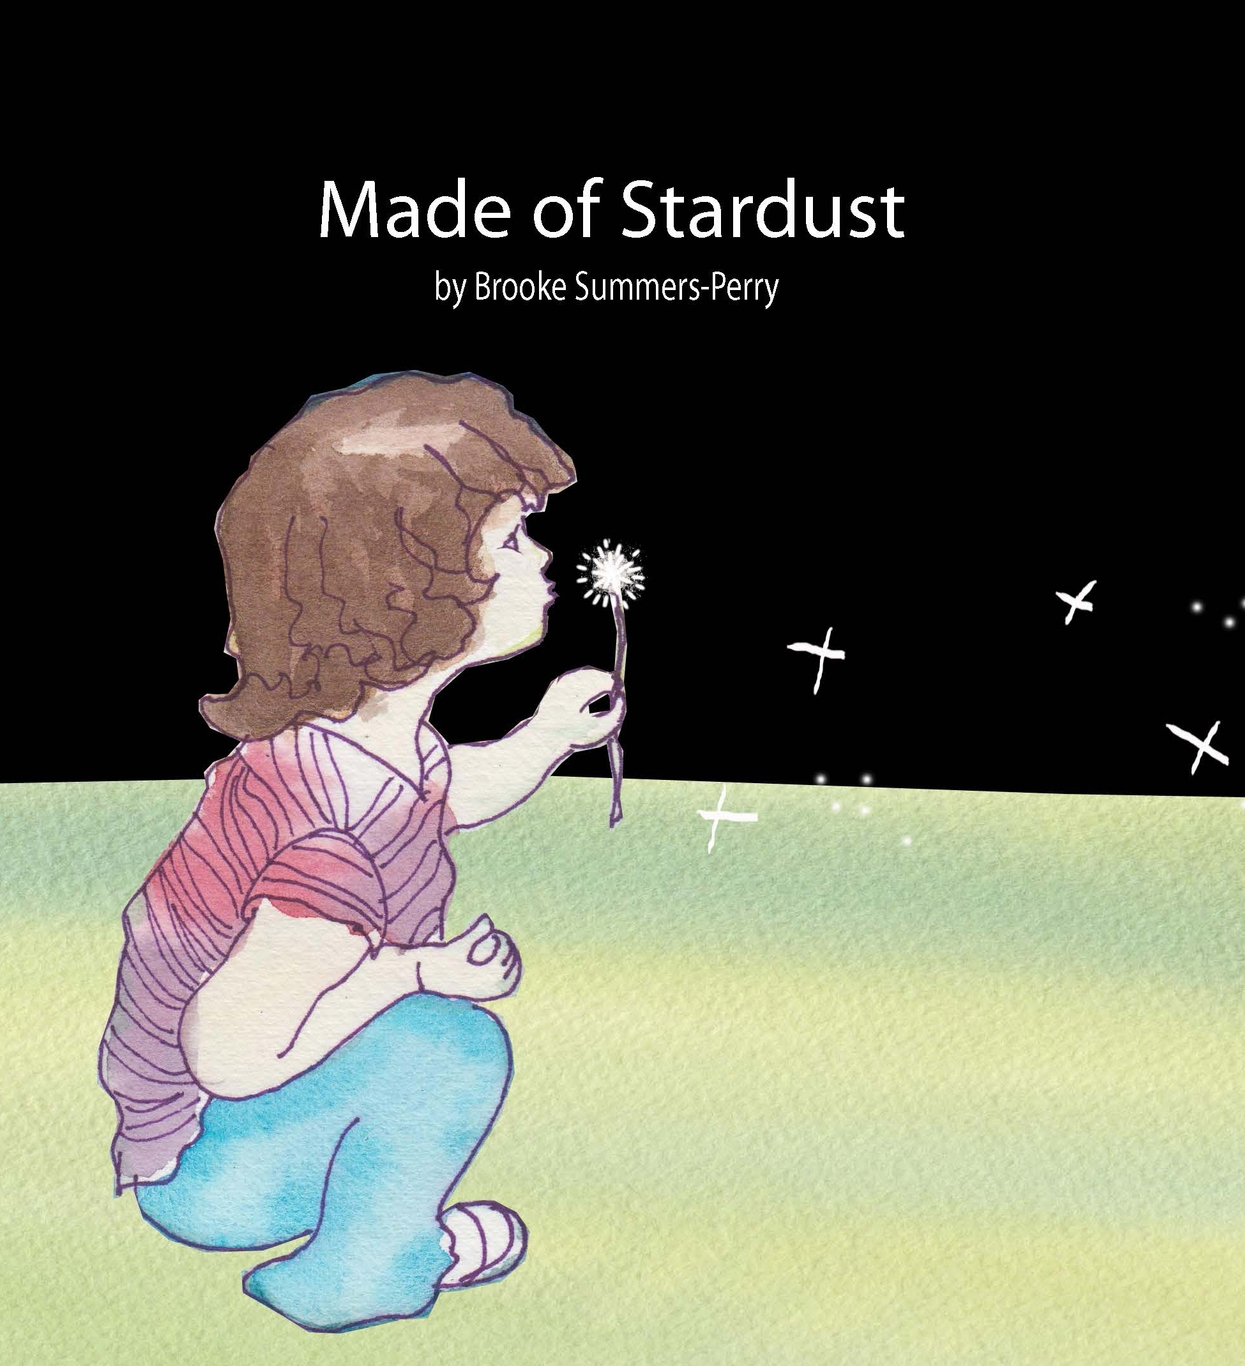 Made of Stardust